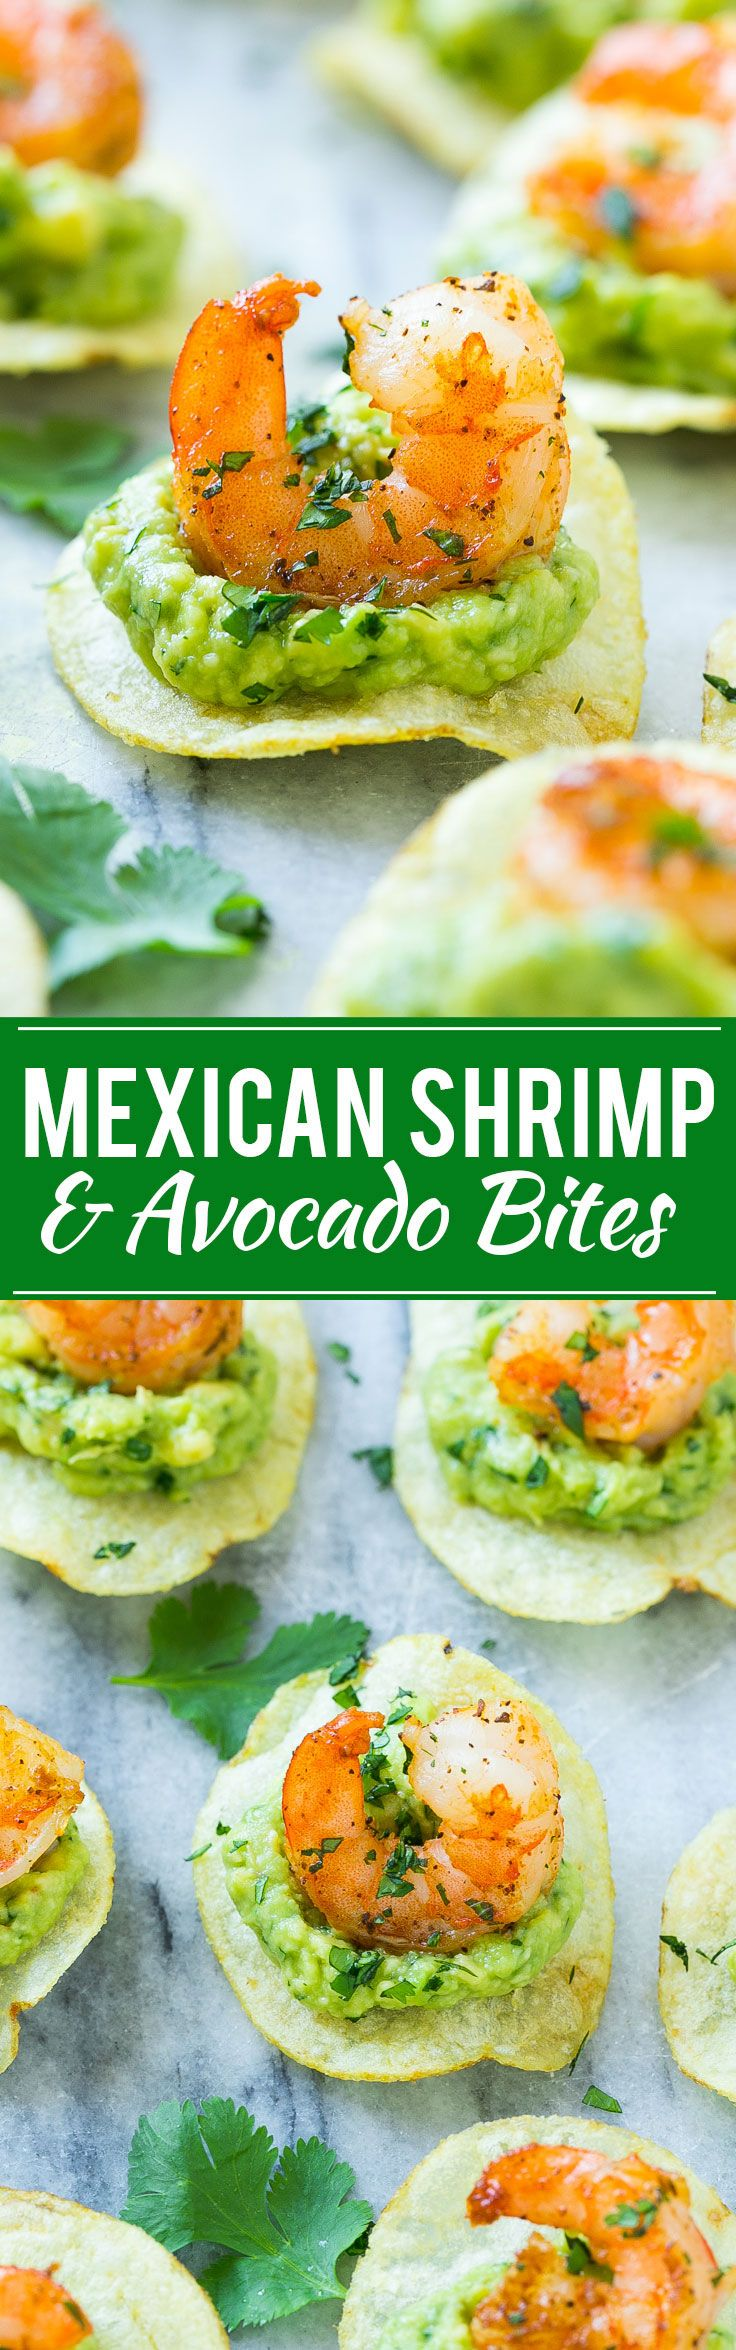 This recipe for Mexican shrimp bites is seared shrimp and guacamole layered onto individual potato chips. A super easy appetizer